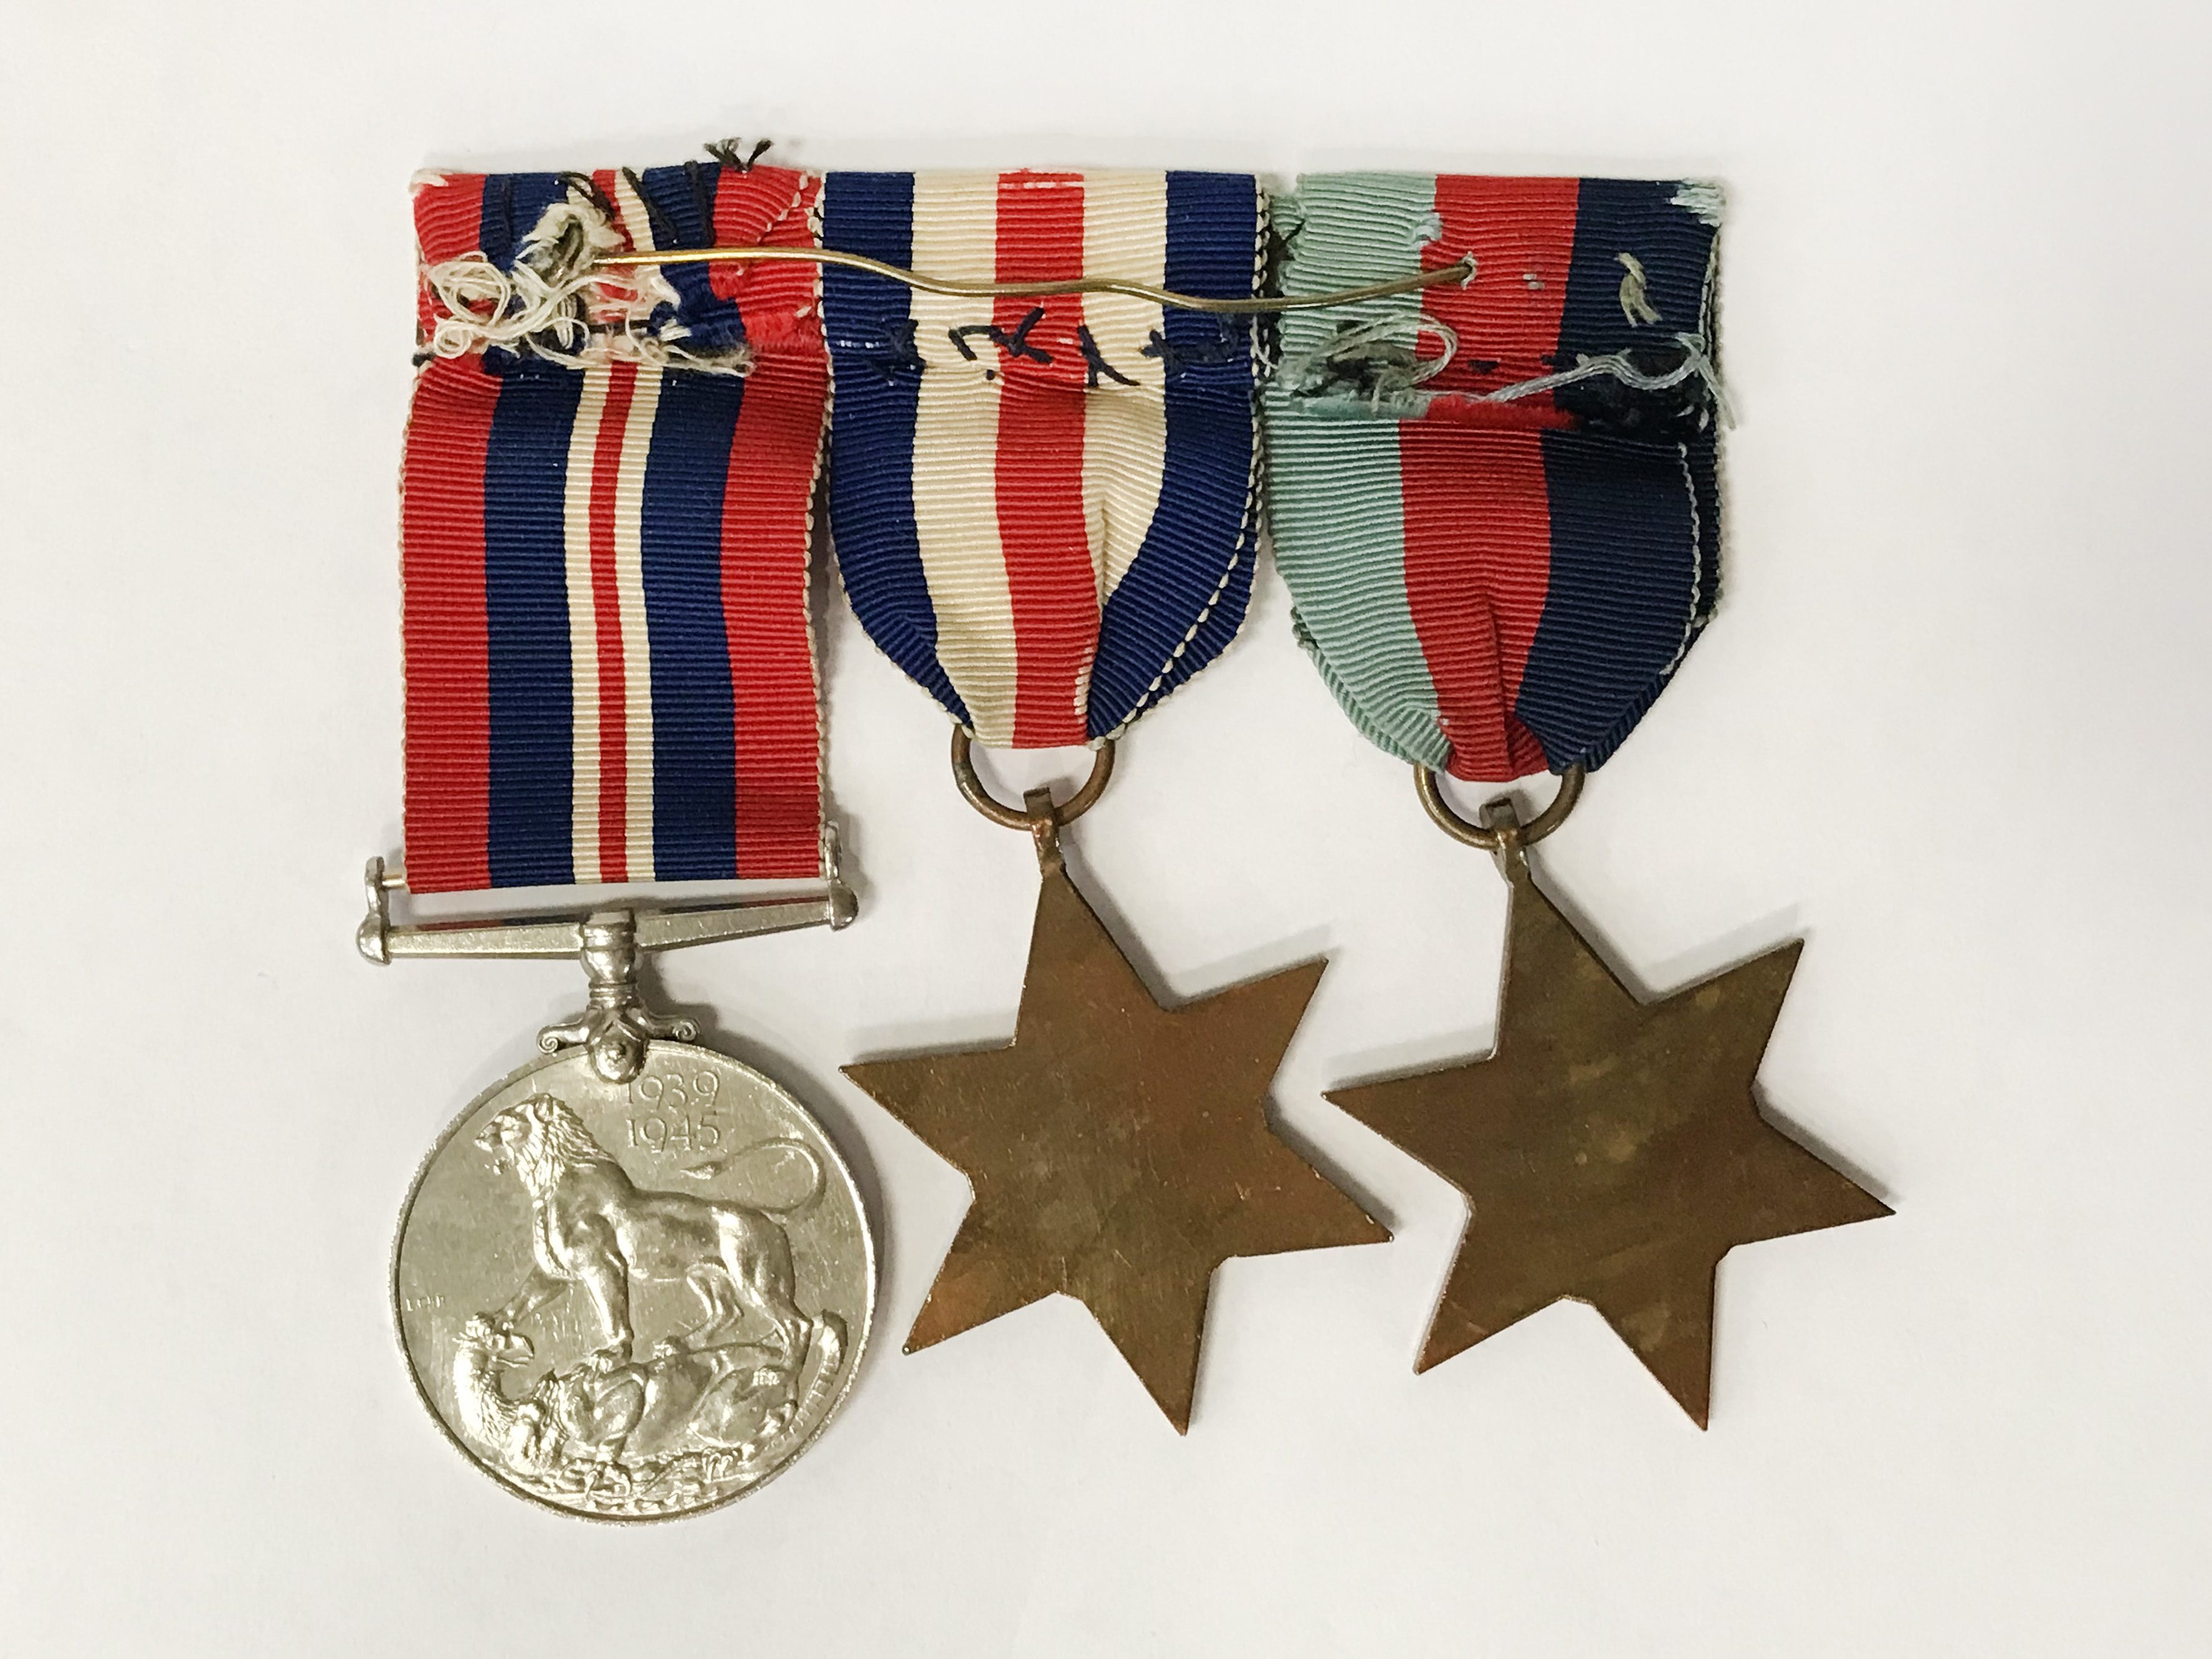 TWO SETS OF SERVICE MEDALS - Image 3 of 7